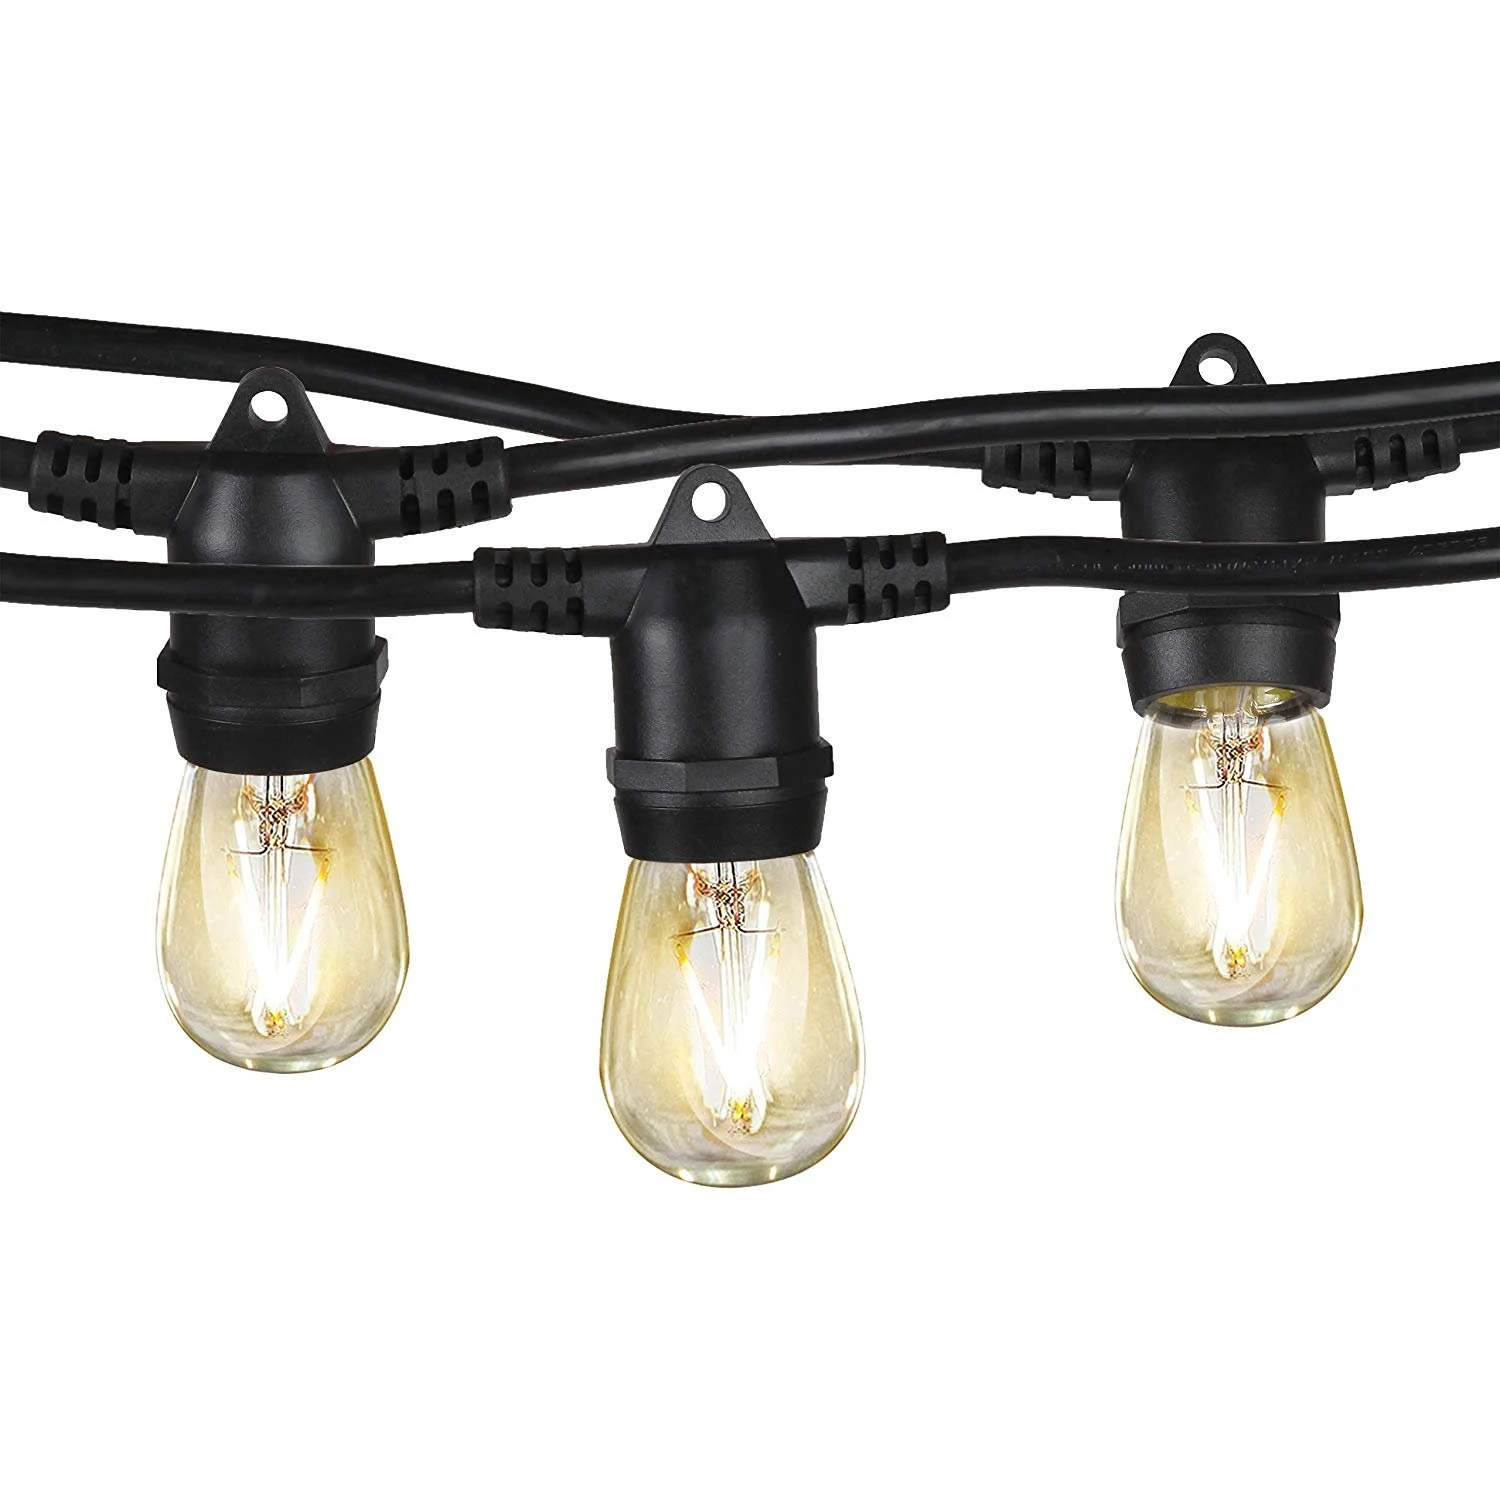 24ft outdoor led string lights with 12 sockets for patio etsy